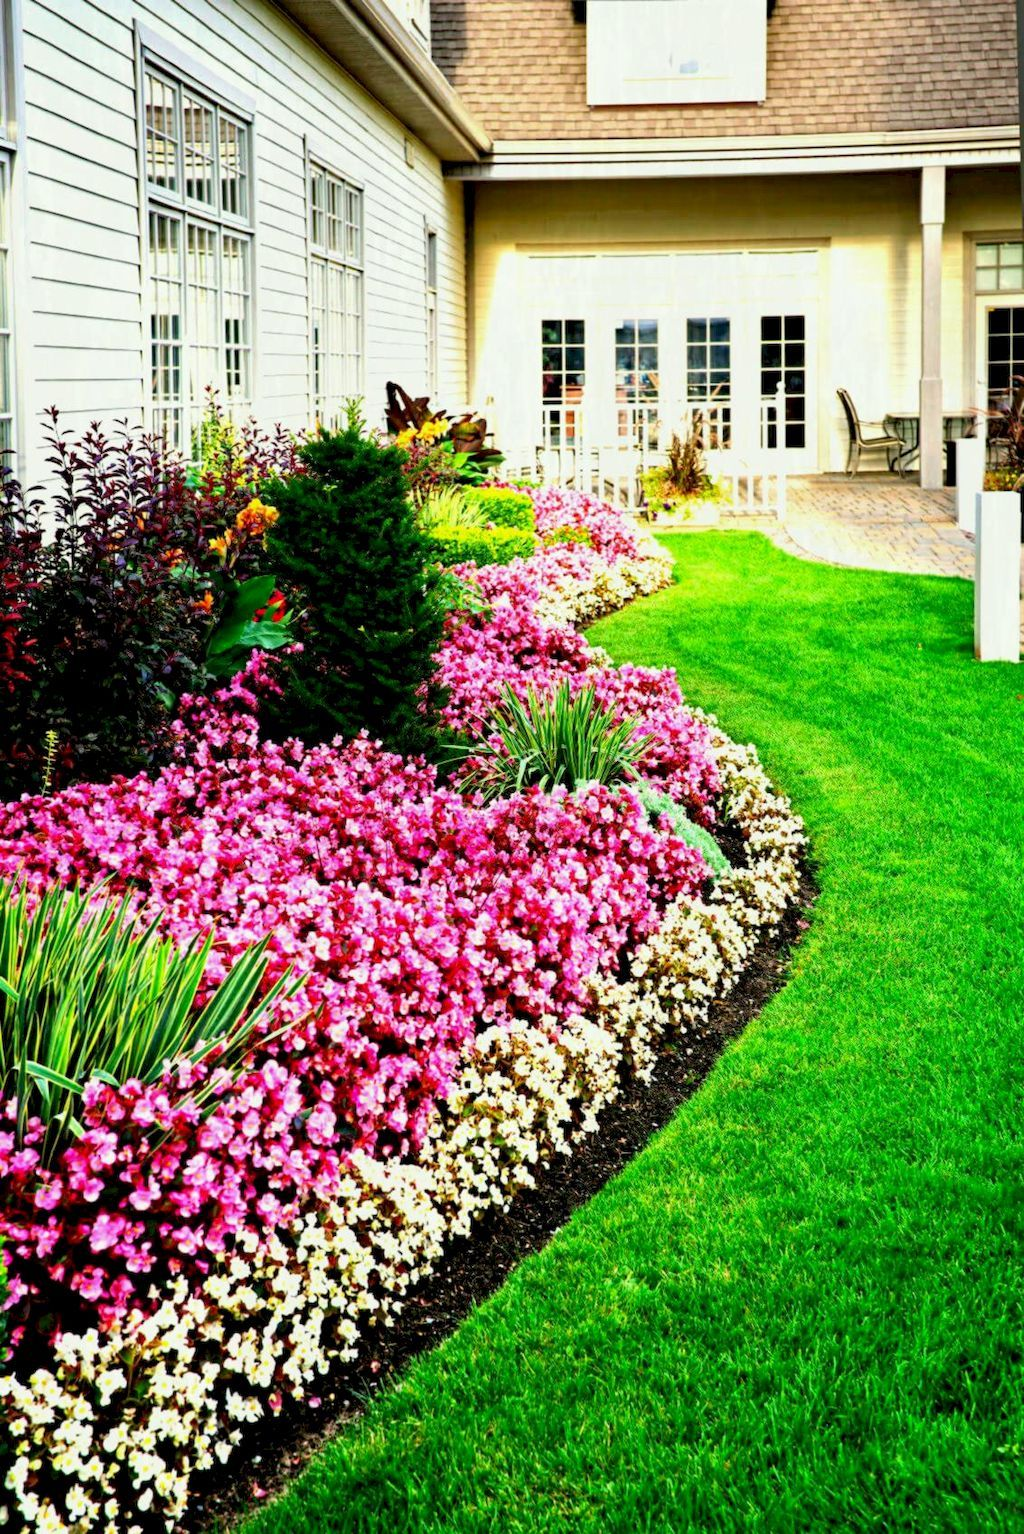 58 spectacular flower garden ideas for homey spring on beautiful front yard rock n flowers garden landscaping ideas how to create it id=75231